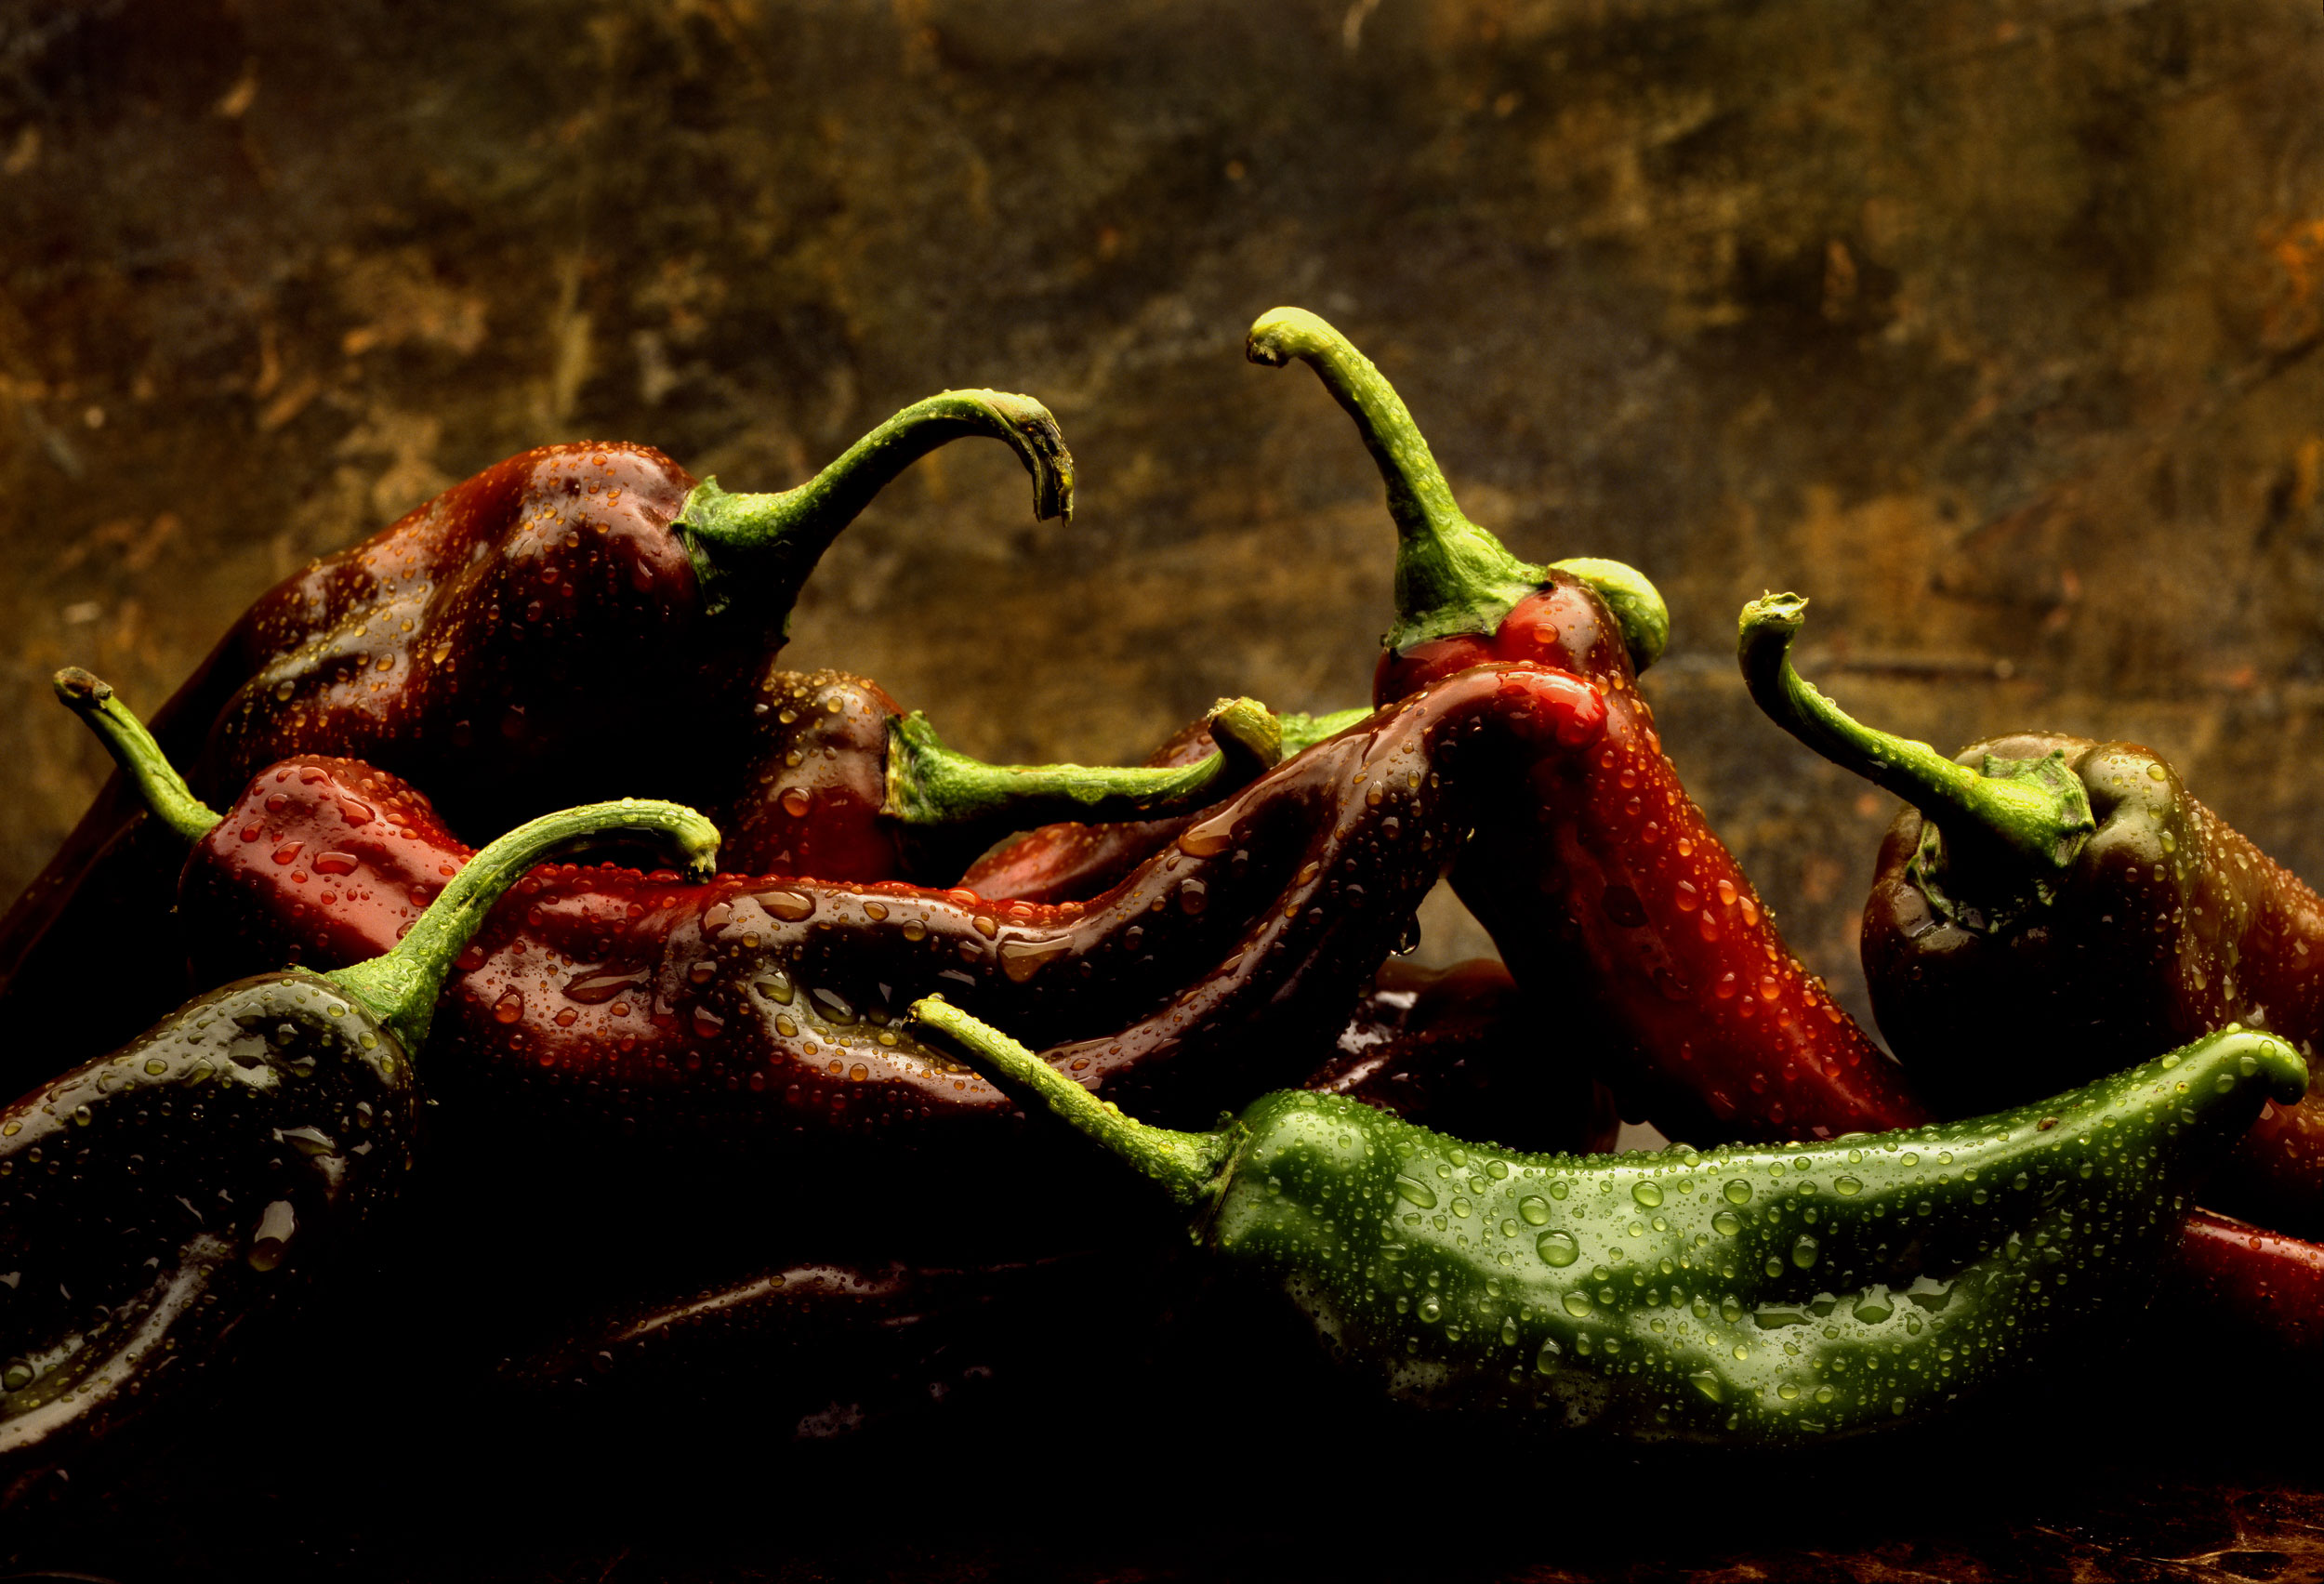 06 FV-1540AnaheimPeppers003-small.jpg